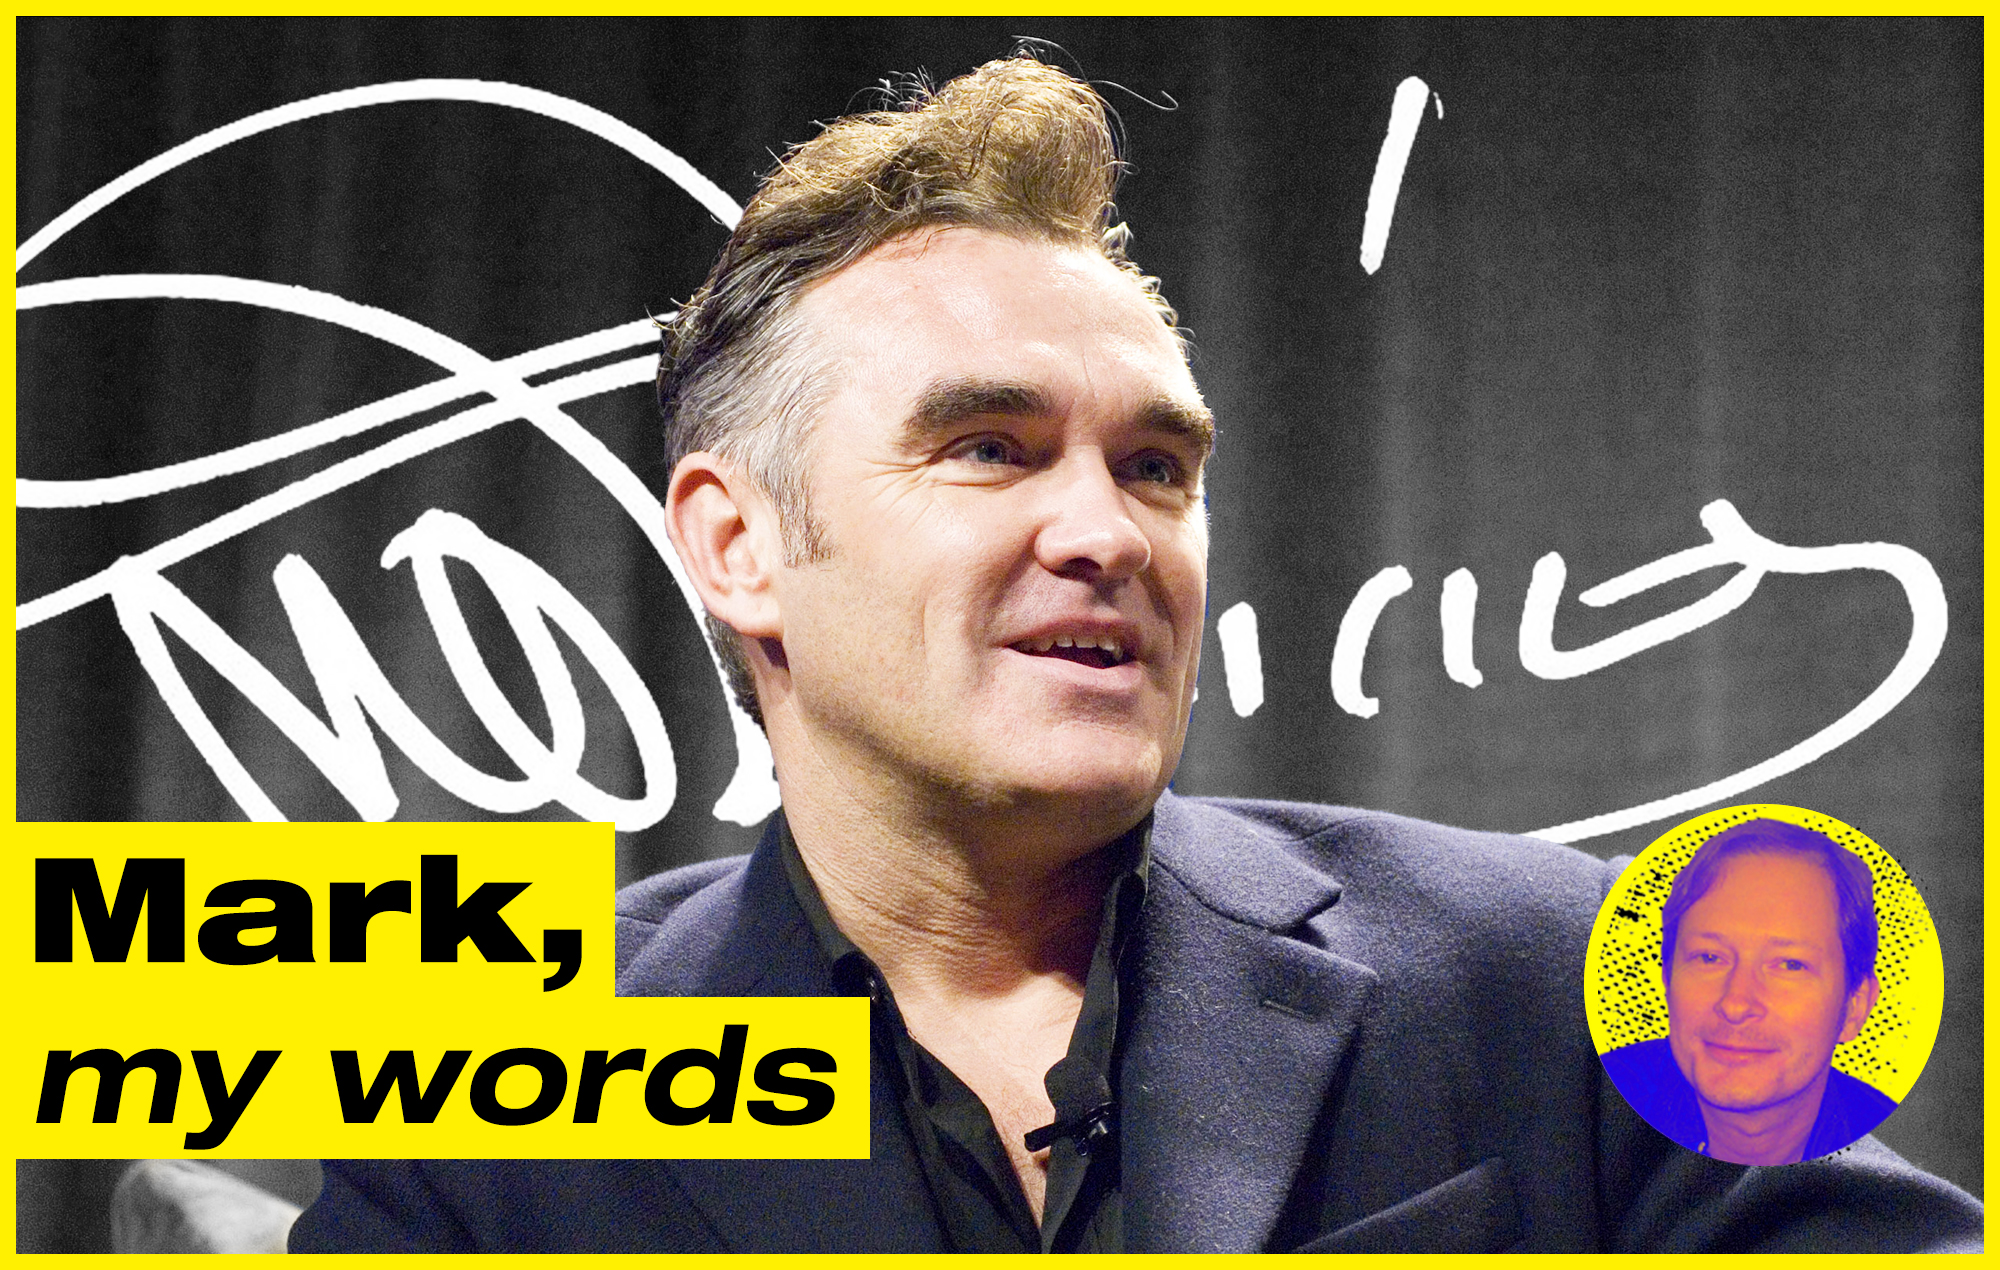 Mark, My Words: Morrissey's latest stunt misses the point – it's not the autograph fans want, it's the moment with their idol